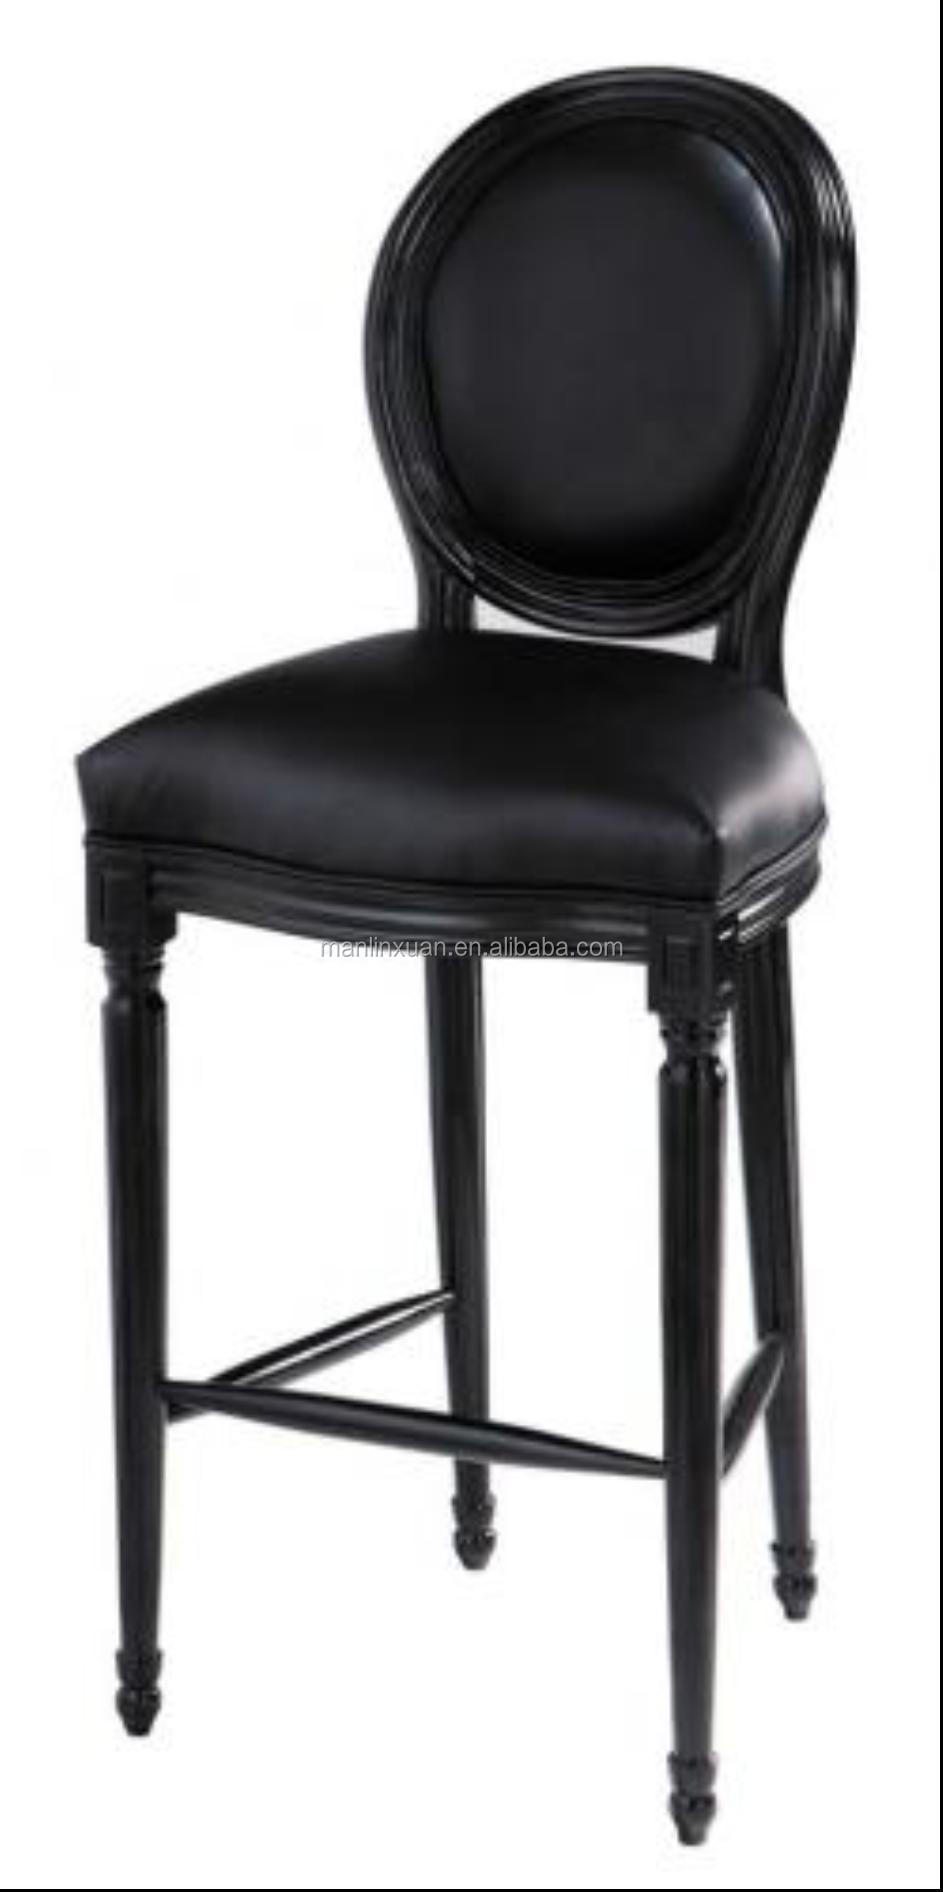 vintage style bar chair for sale xd1018 buy vintage style bar chair for sale xd1018 old style. Black Bedroom Furniture Sets. Home Design Ideas